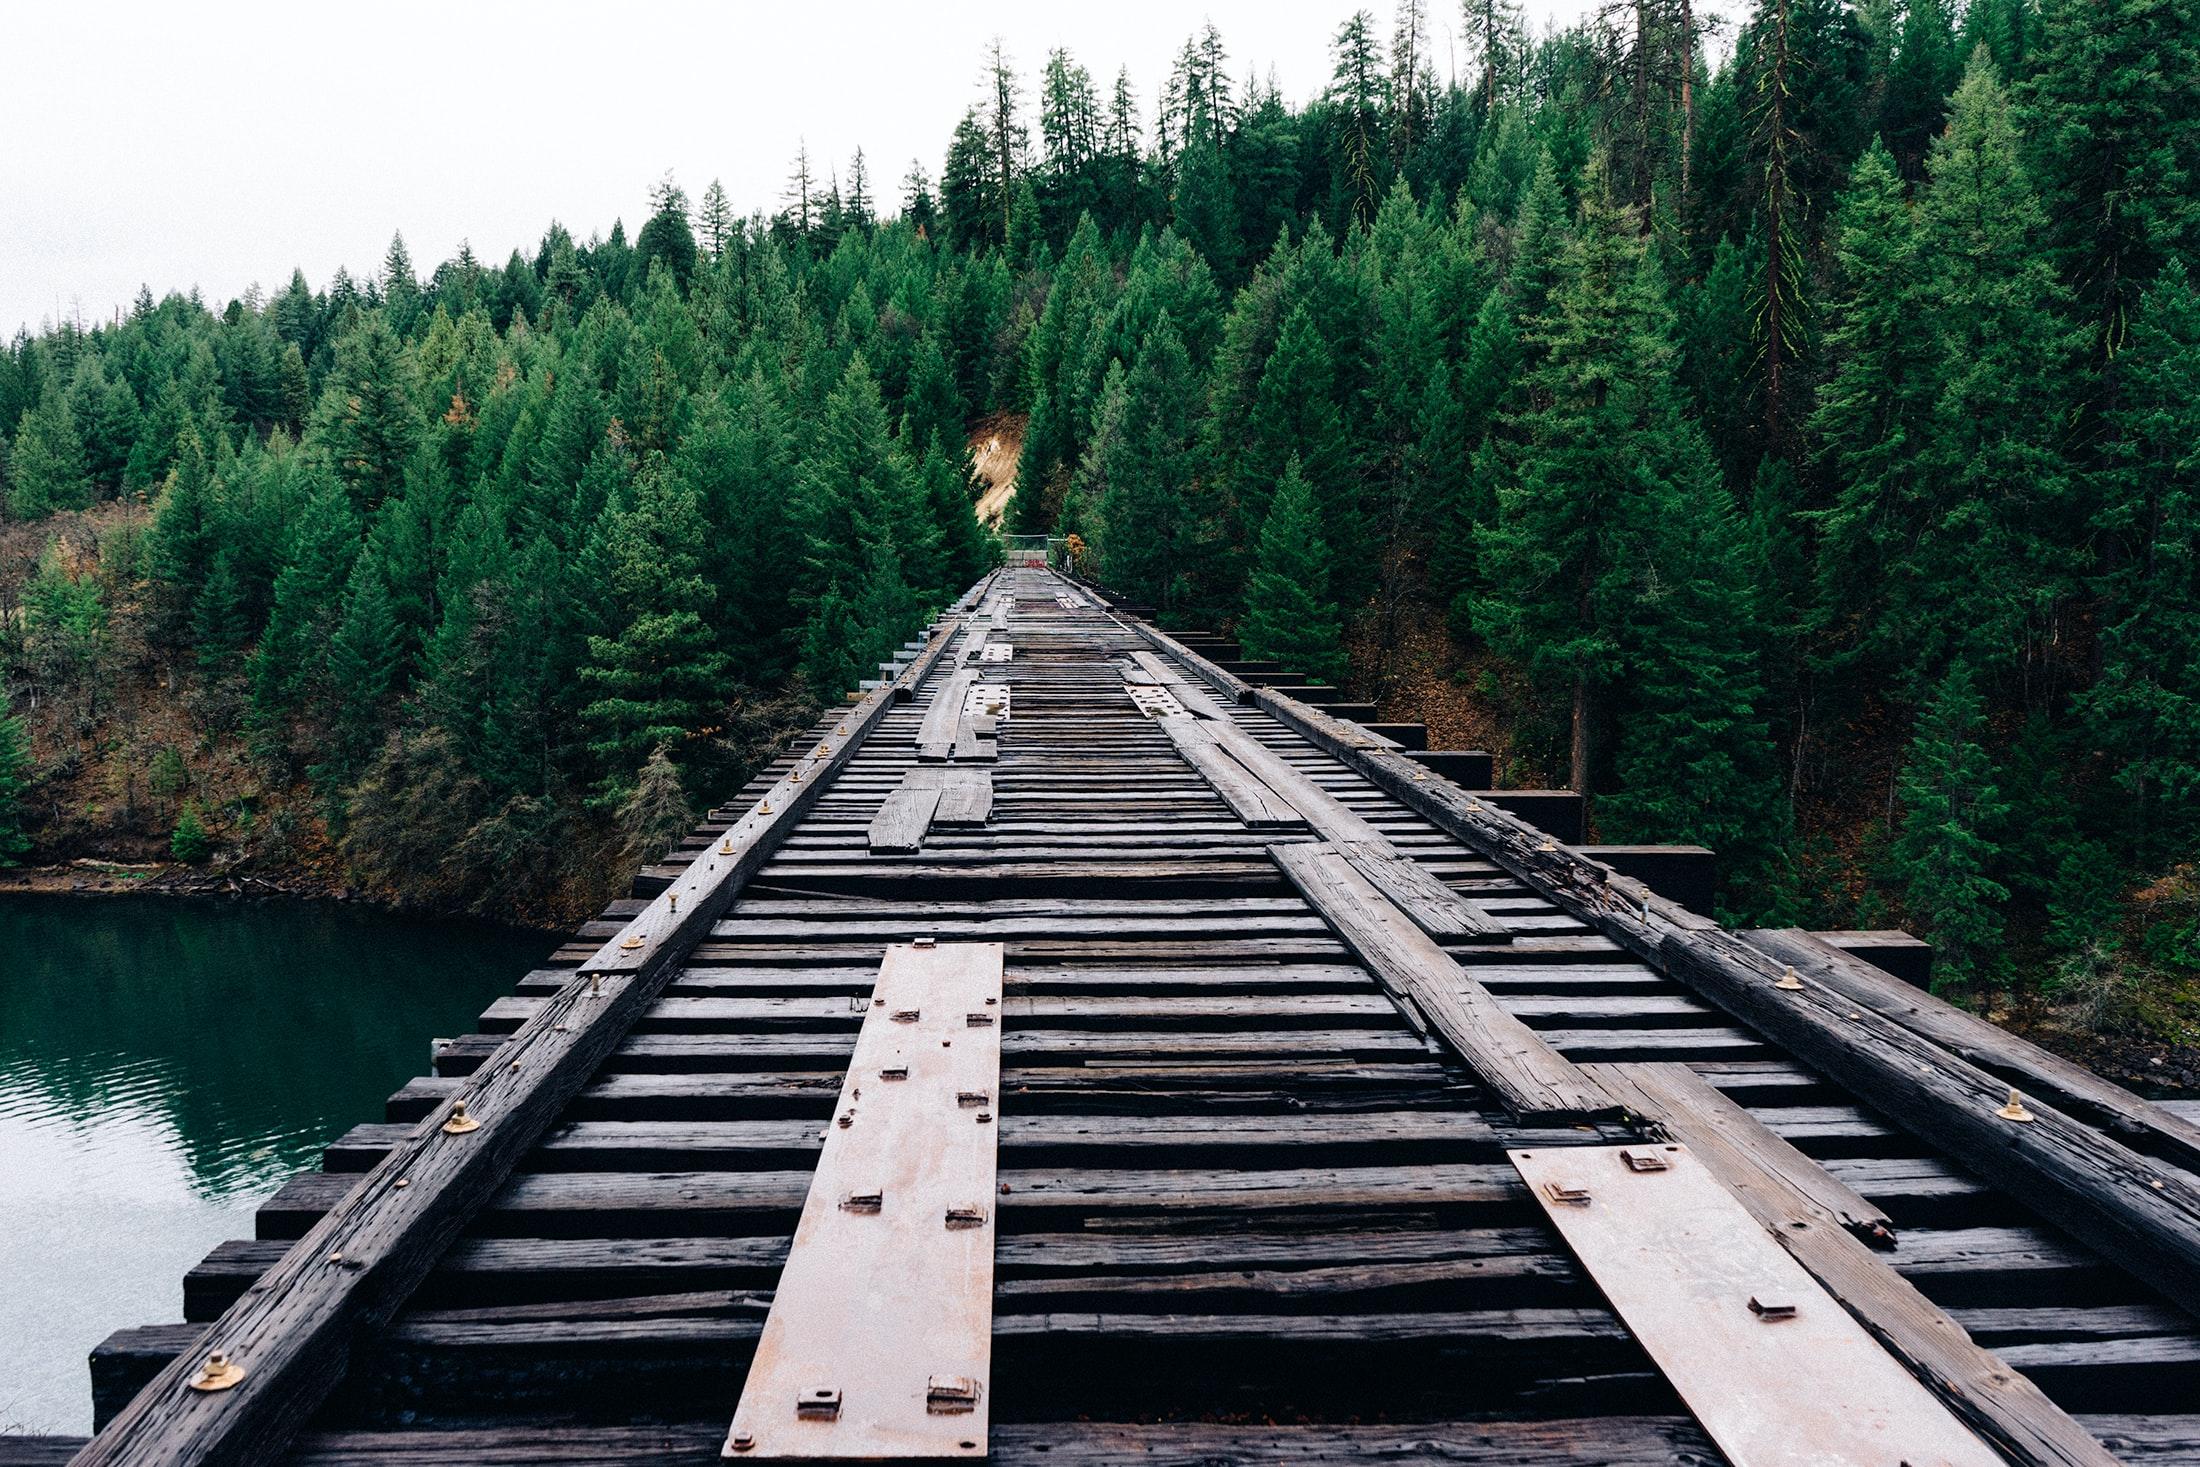 Railroad track on a bridge over water near a forest